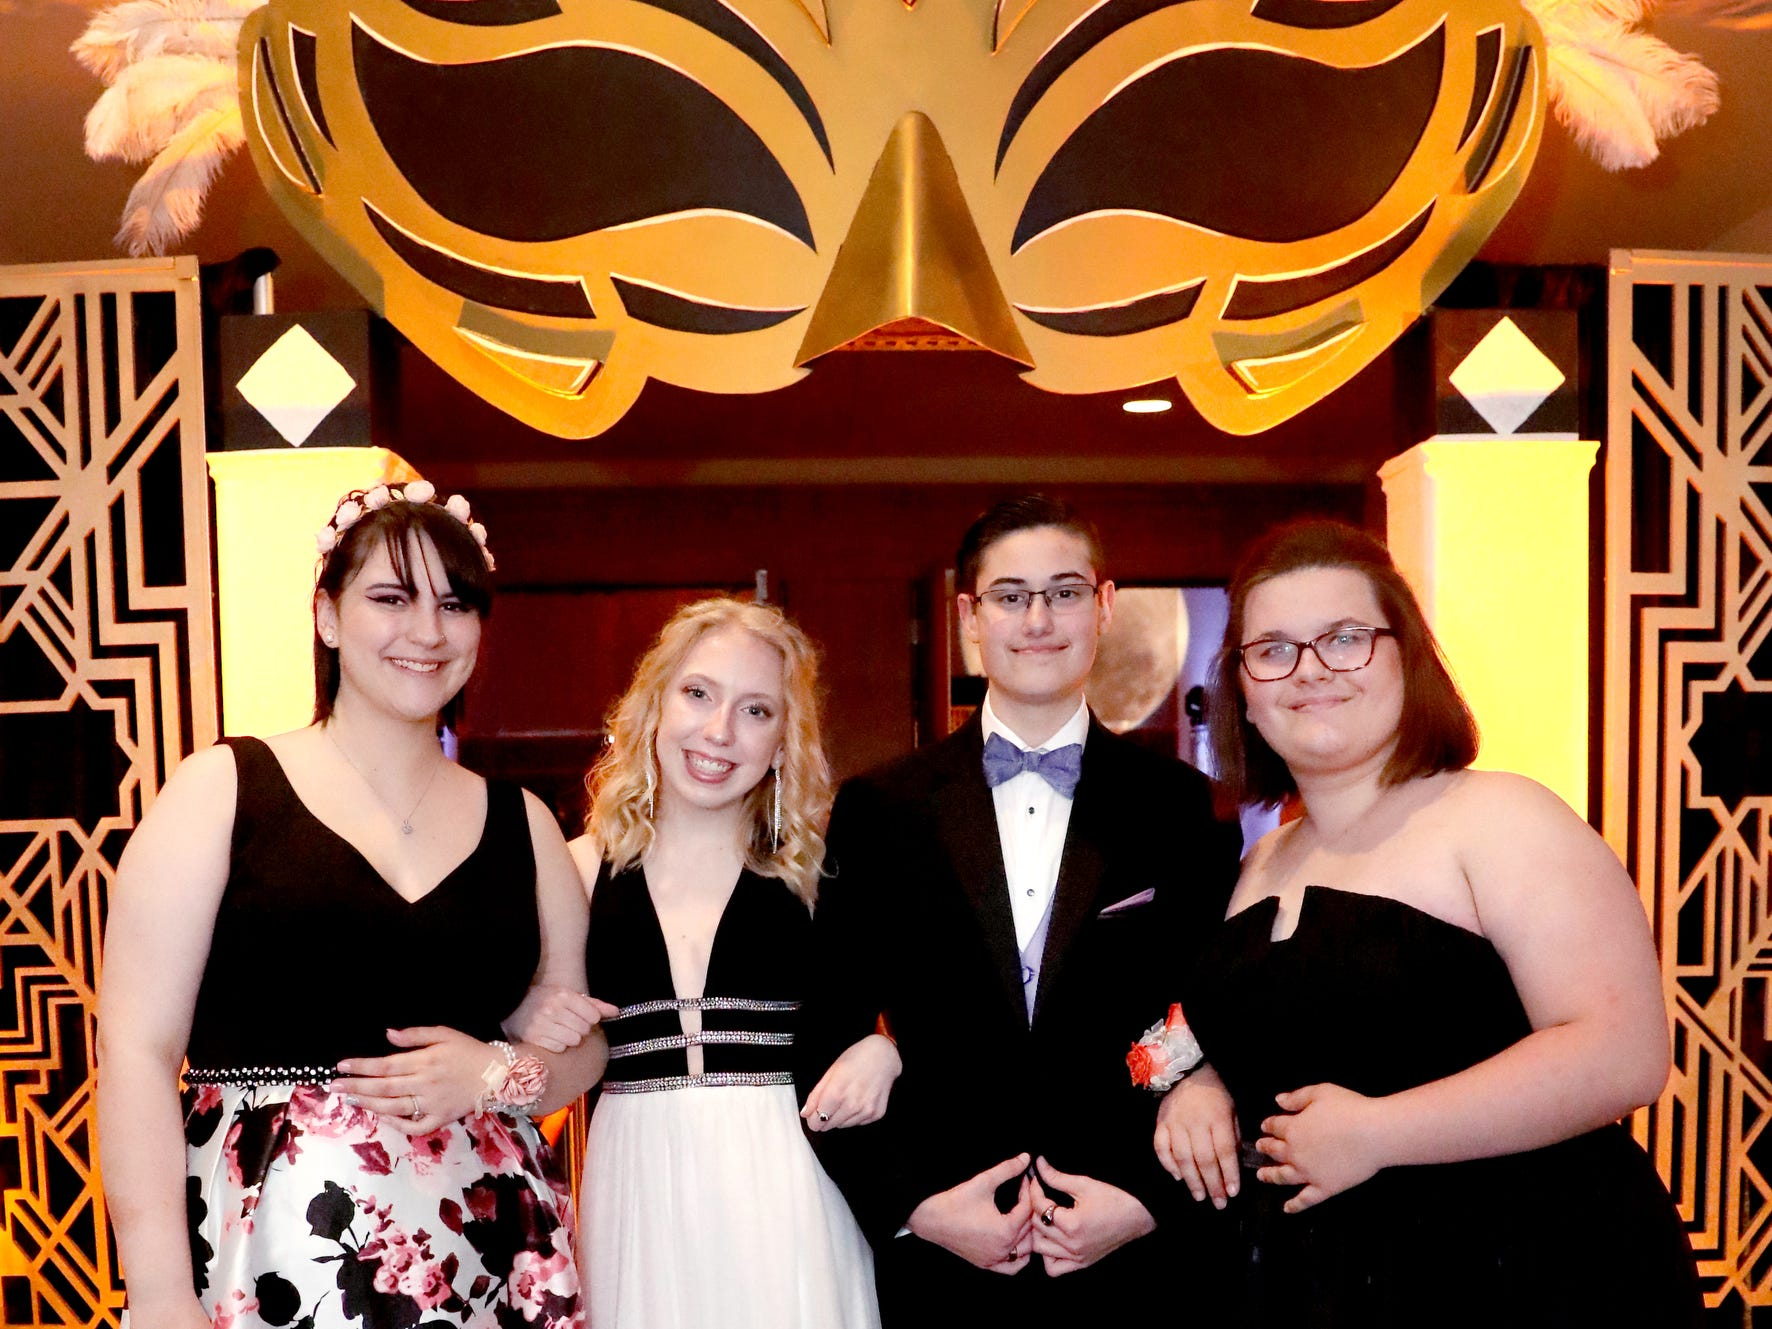 (Left to Right) Ivy Crim, Kylie Turner, Abigail Harshbarger and Melanie Fultz at Blackman's prom on Friday April 12, 2019, at MTSU.